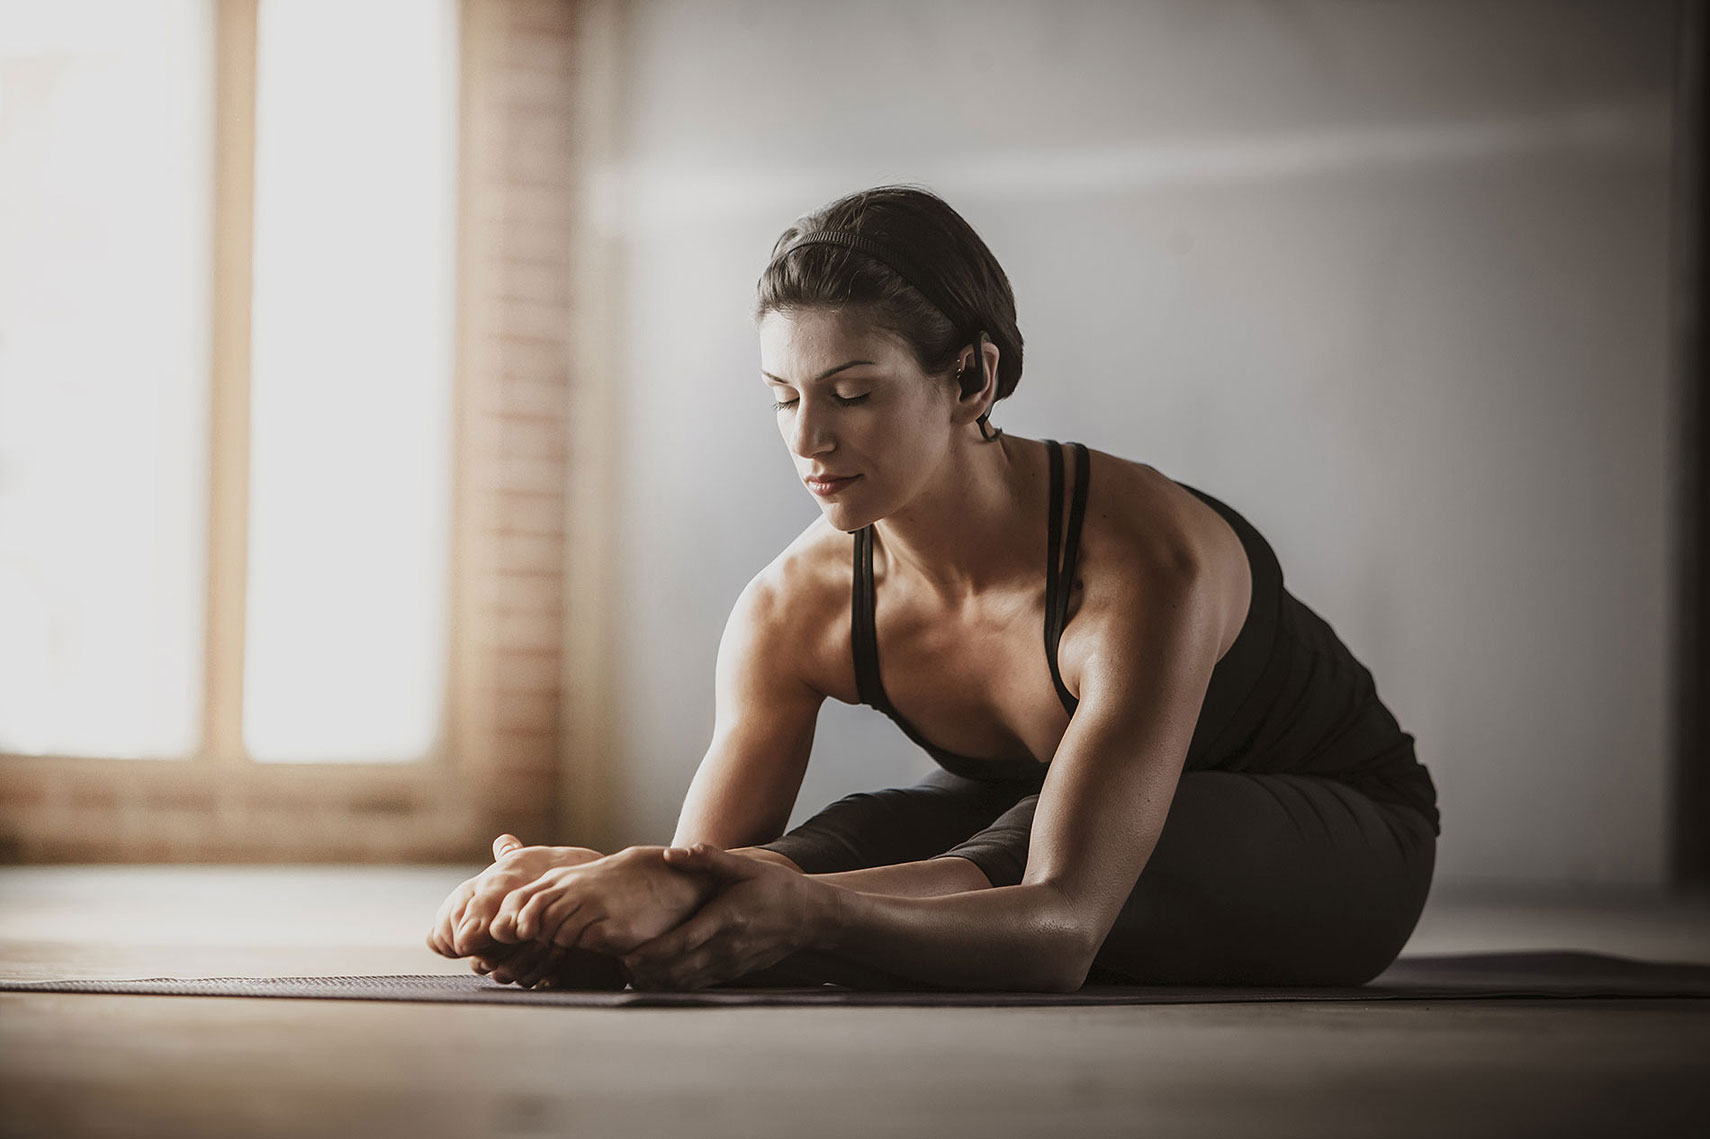 A women stretching on a yoga matt. | John Fedele Lifestyle Photography